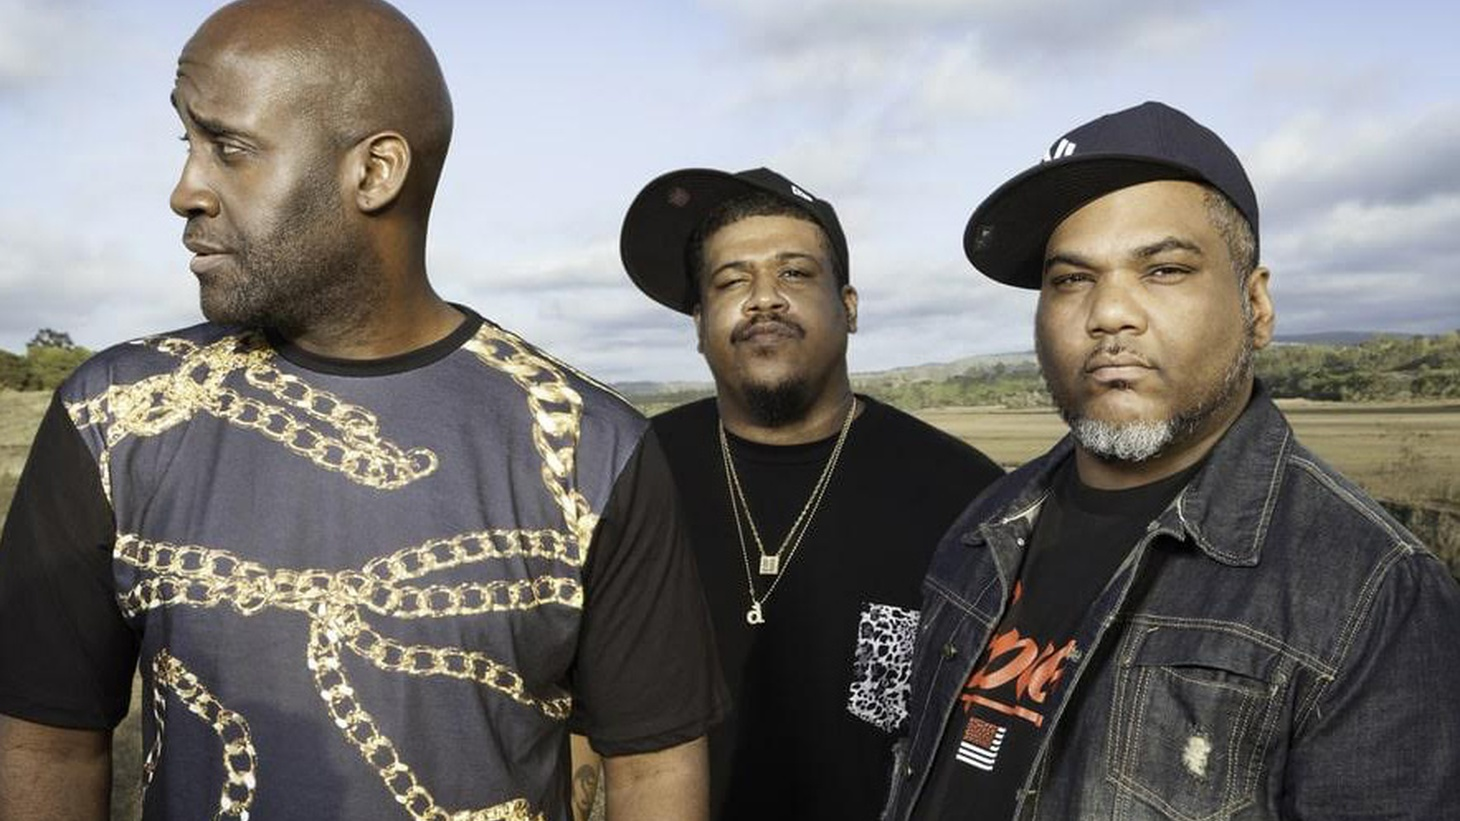 De La Soul called its 2016 self-release And the Anonymous Nobody, a fitting name for an album financed by a Kickstarter campaign. Three years of work and more than 200 hours of recording produced 17 tracks  that include a wild variety of guests.